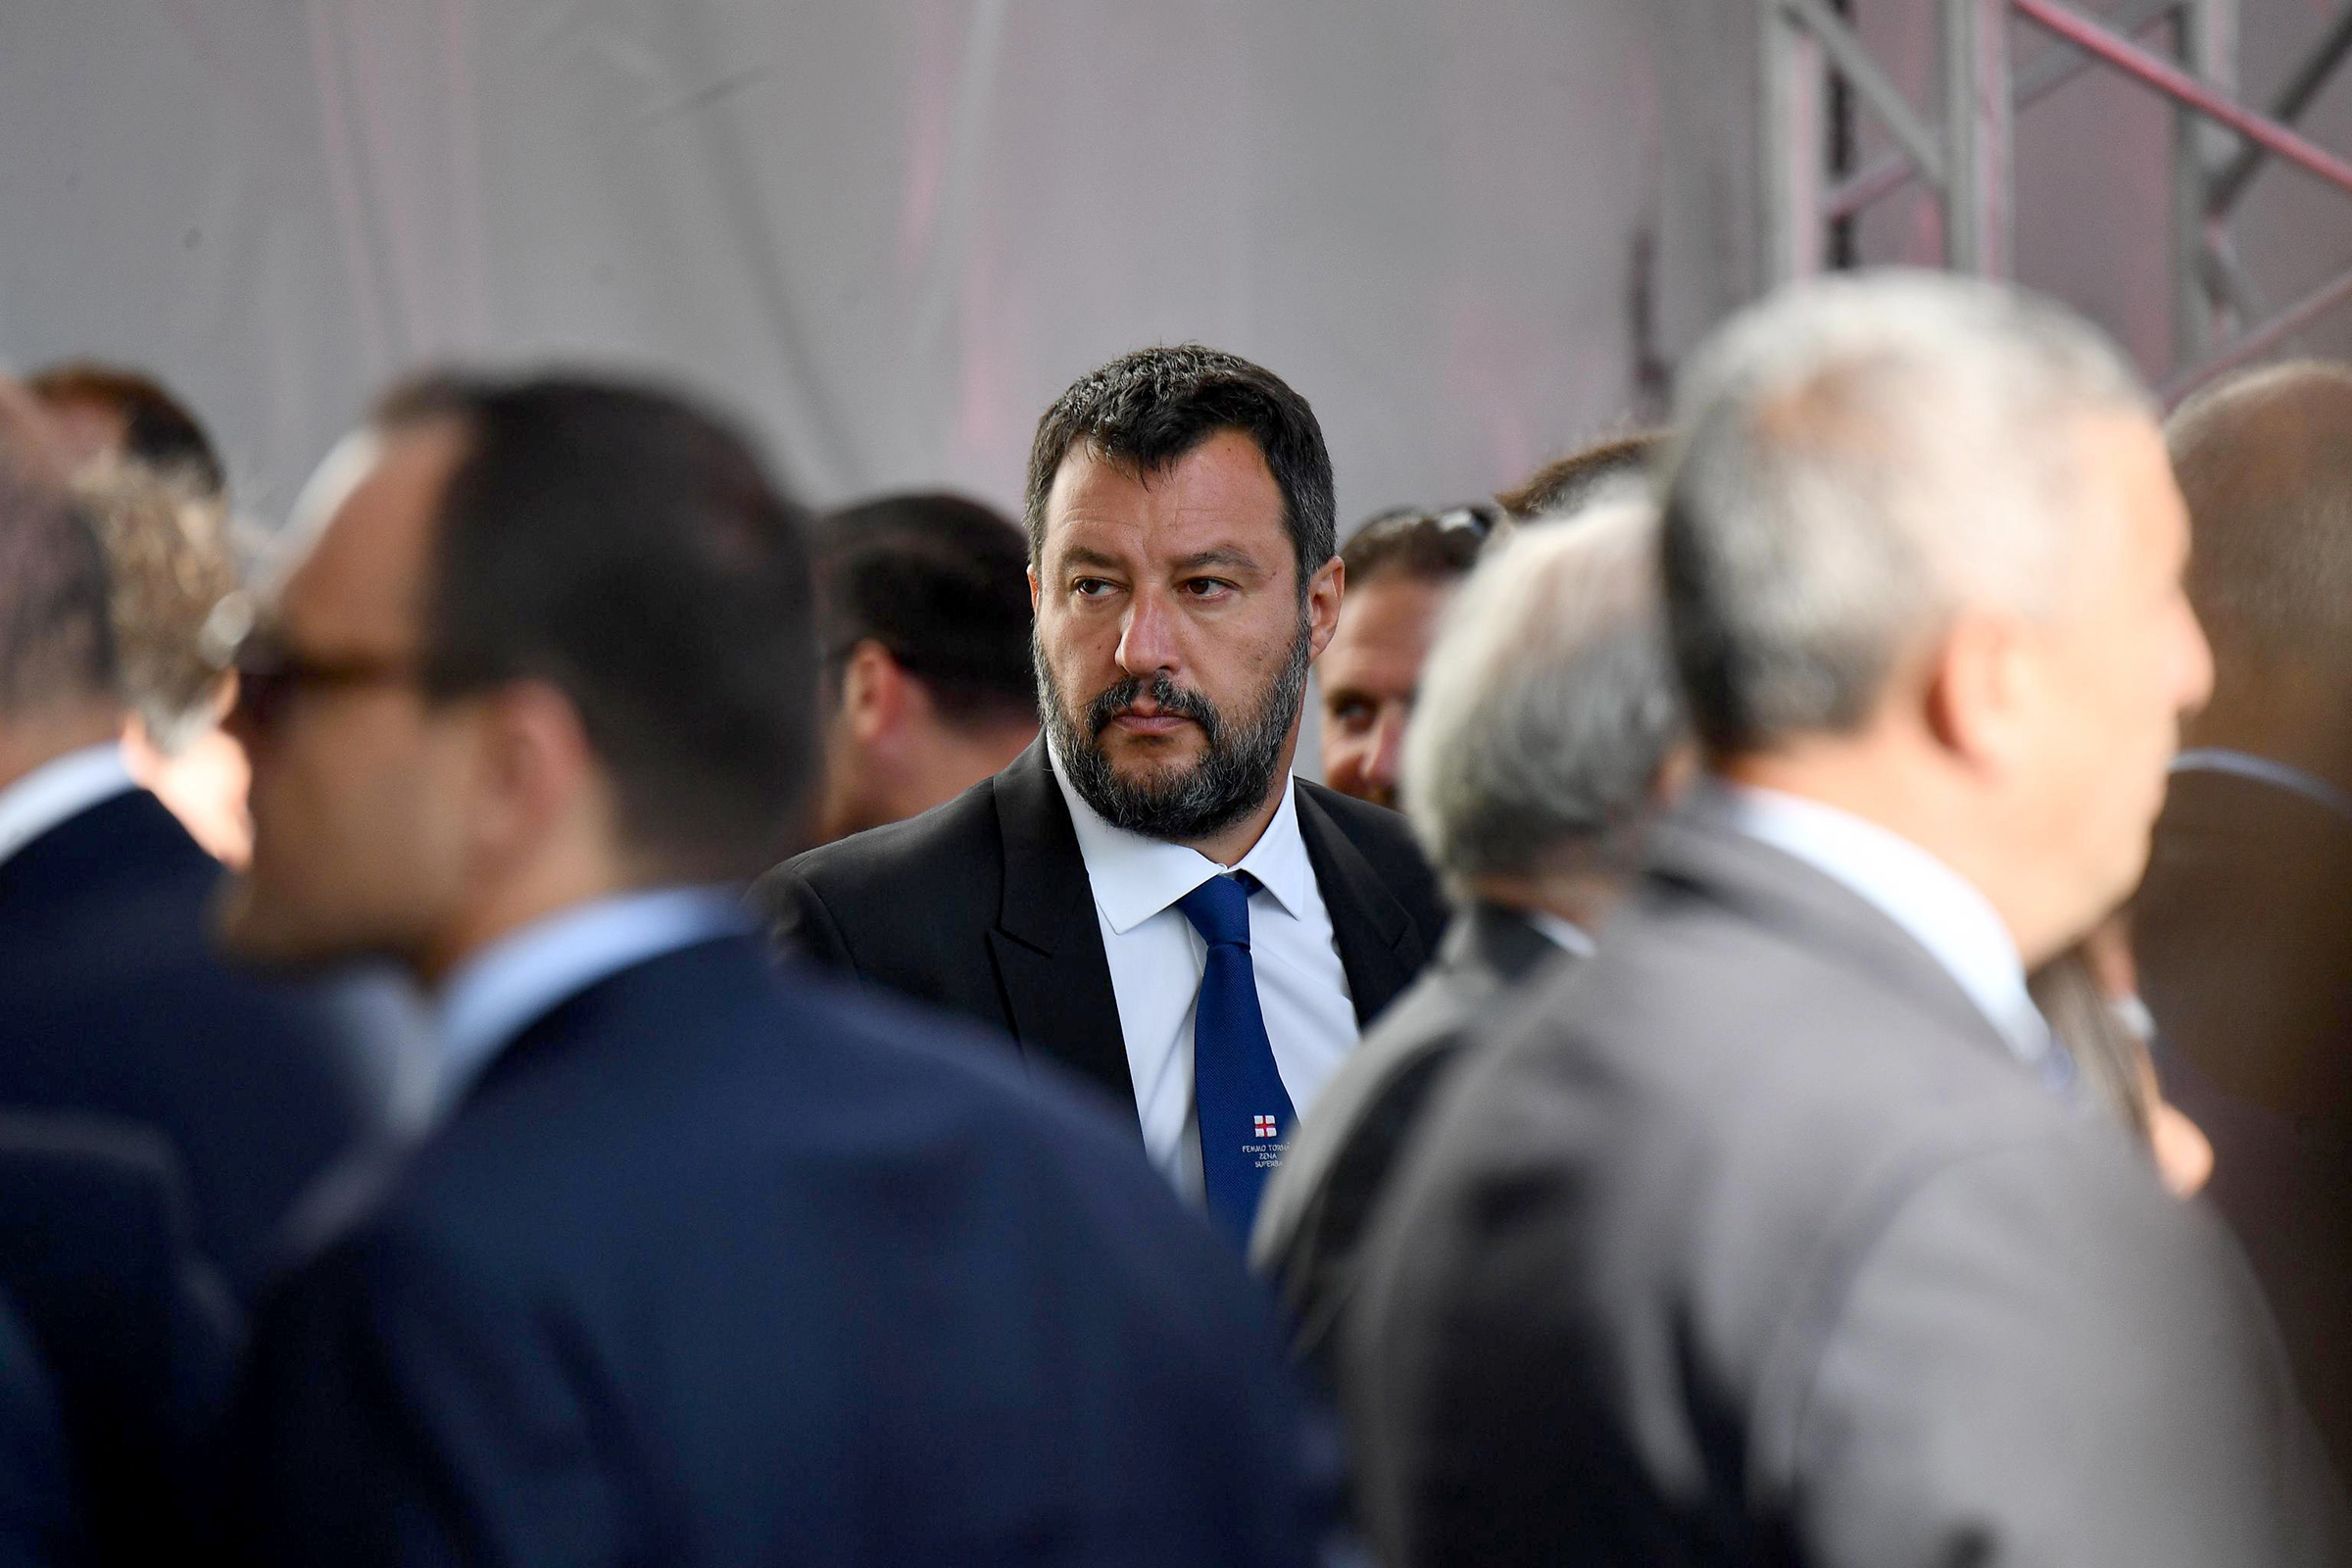 Italian Deputy Premier and Interior Minister Matteo Salvini arrives to attend a memorial ceremony for the victims on the first anniversary of the Morandi highway bridge collapse, in Genoa on August 14.